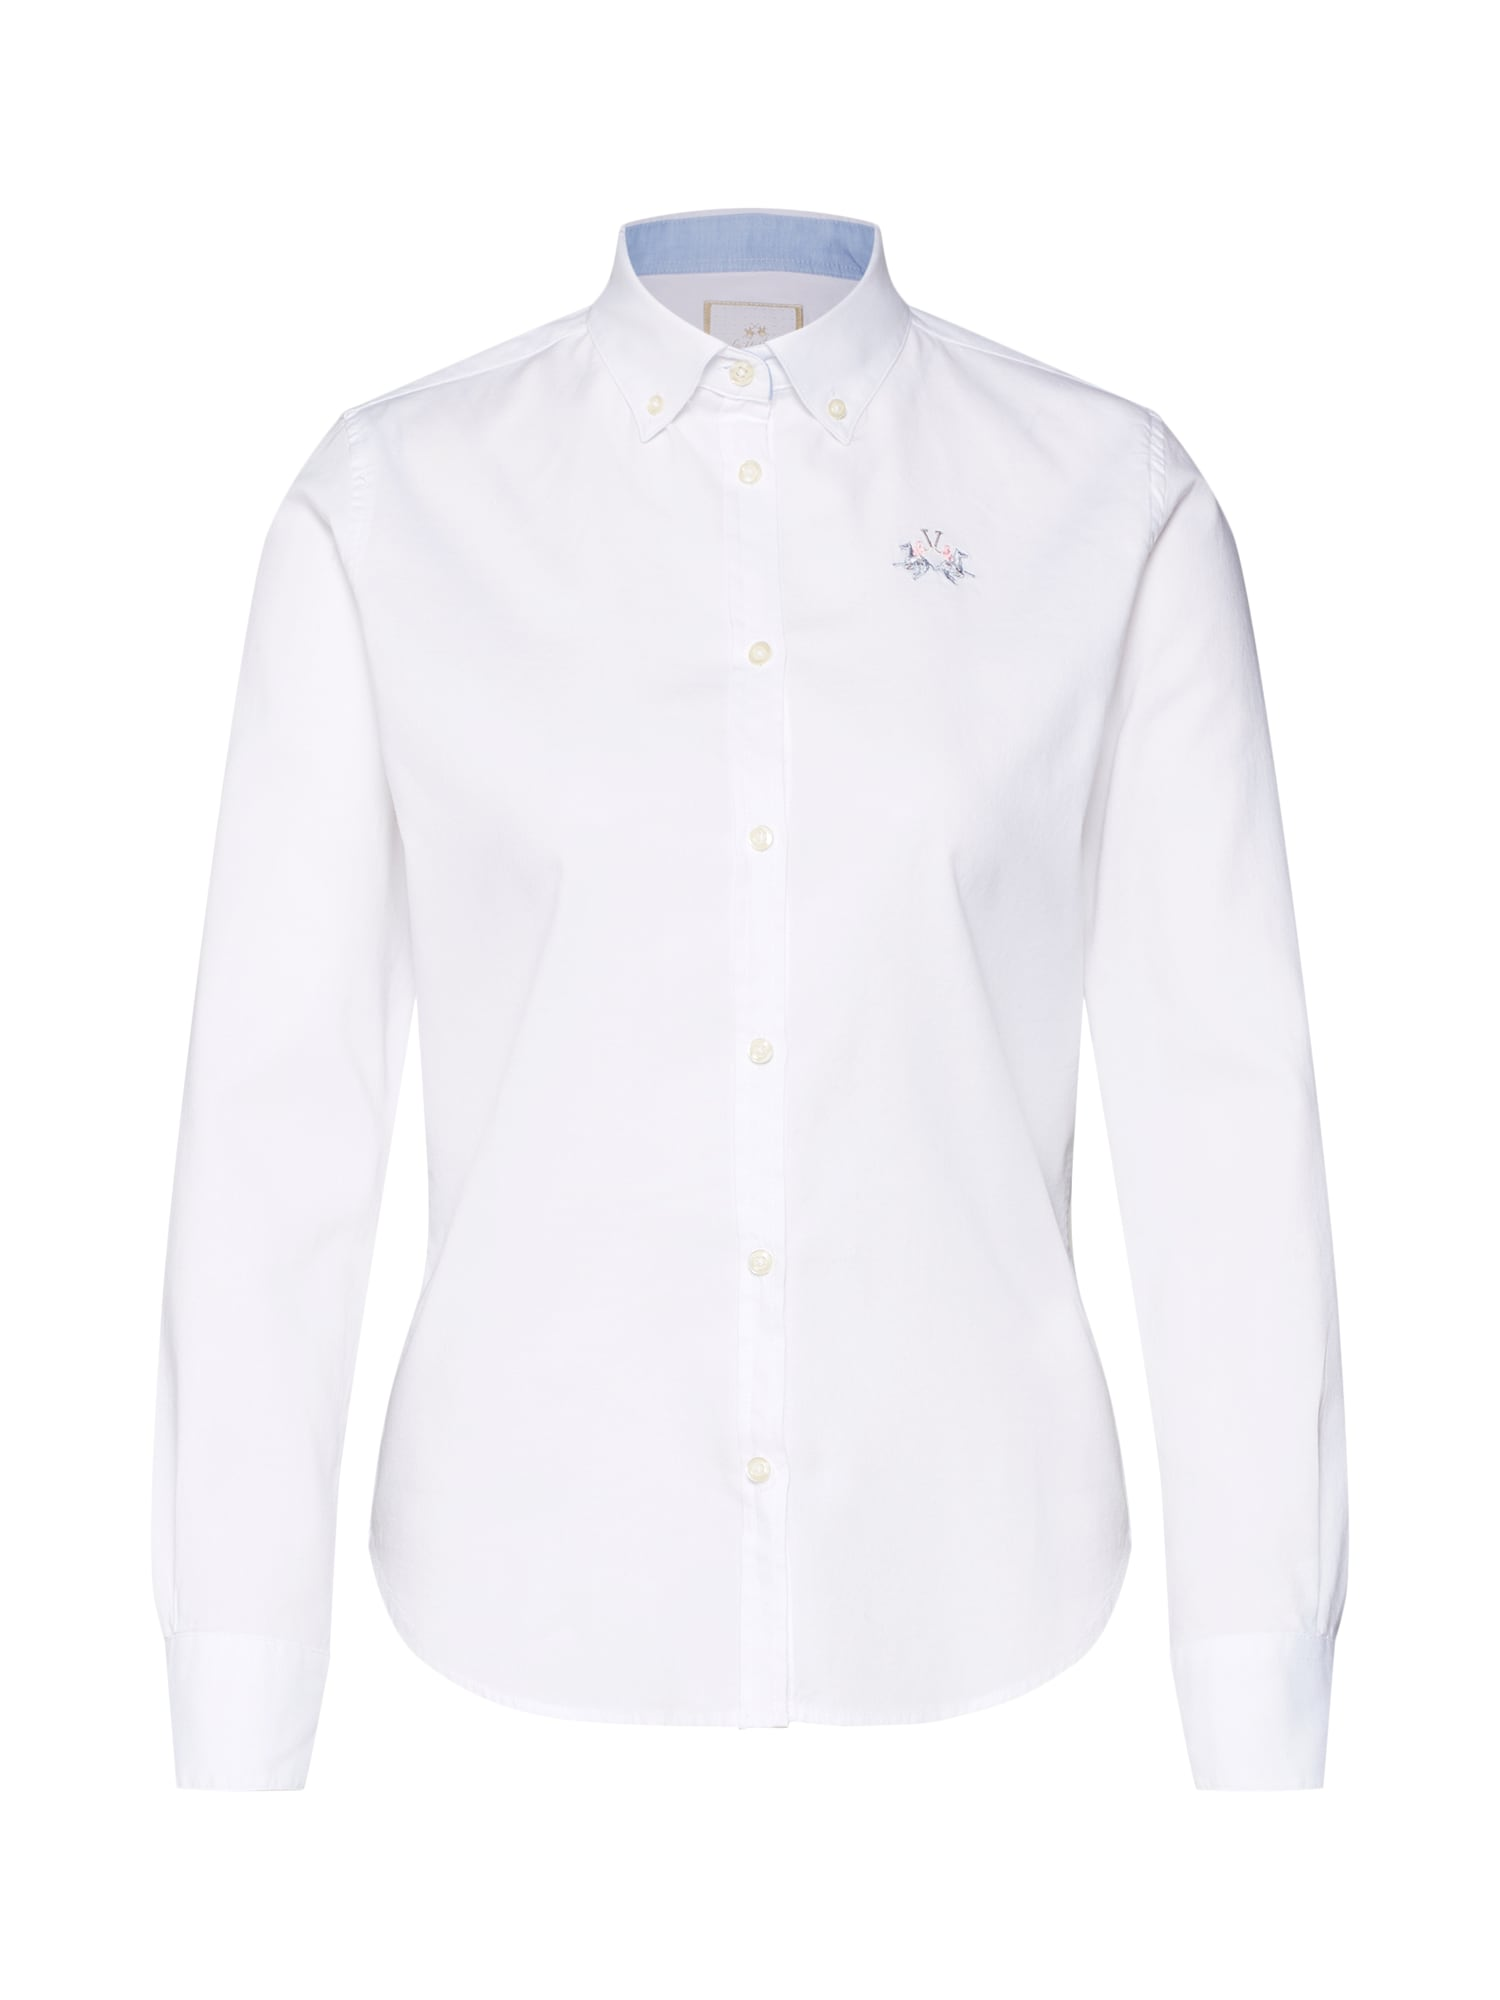 Halenka SHIRT LS OXFORD 501 302 STR bílá La Martina